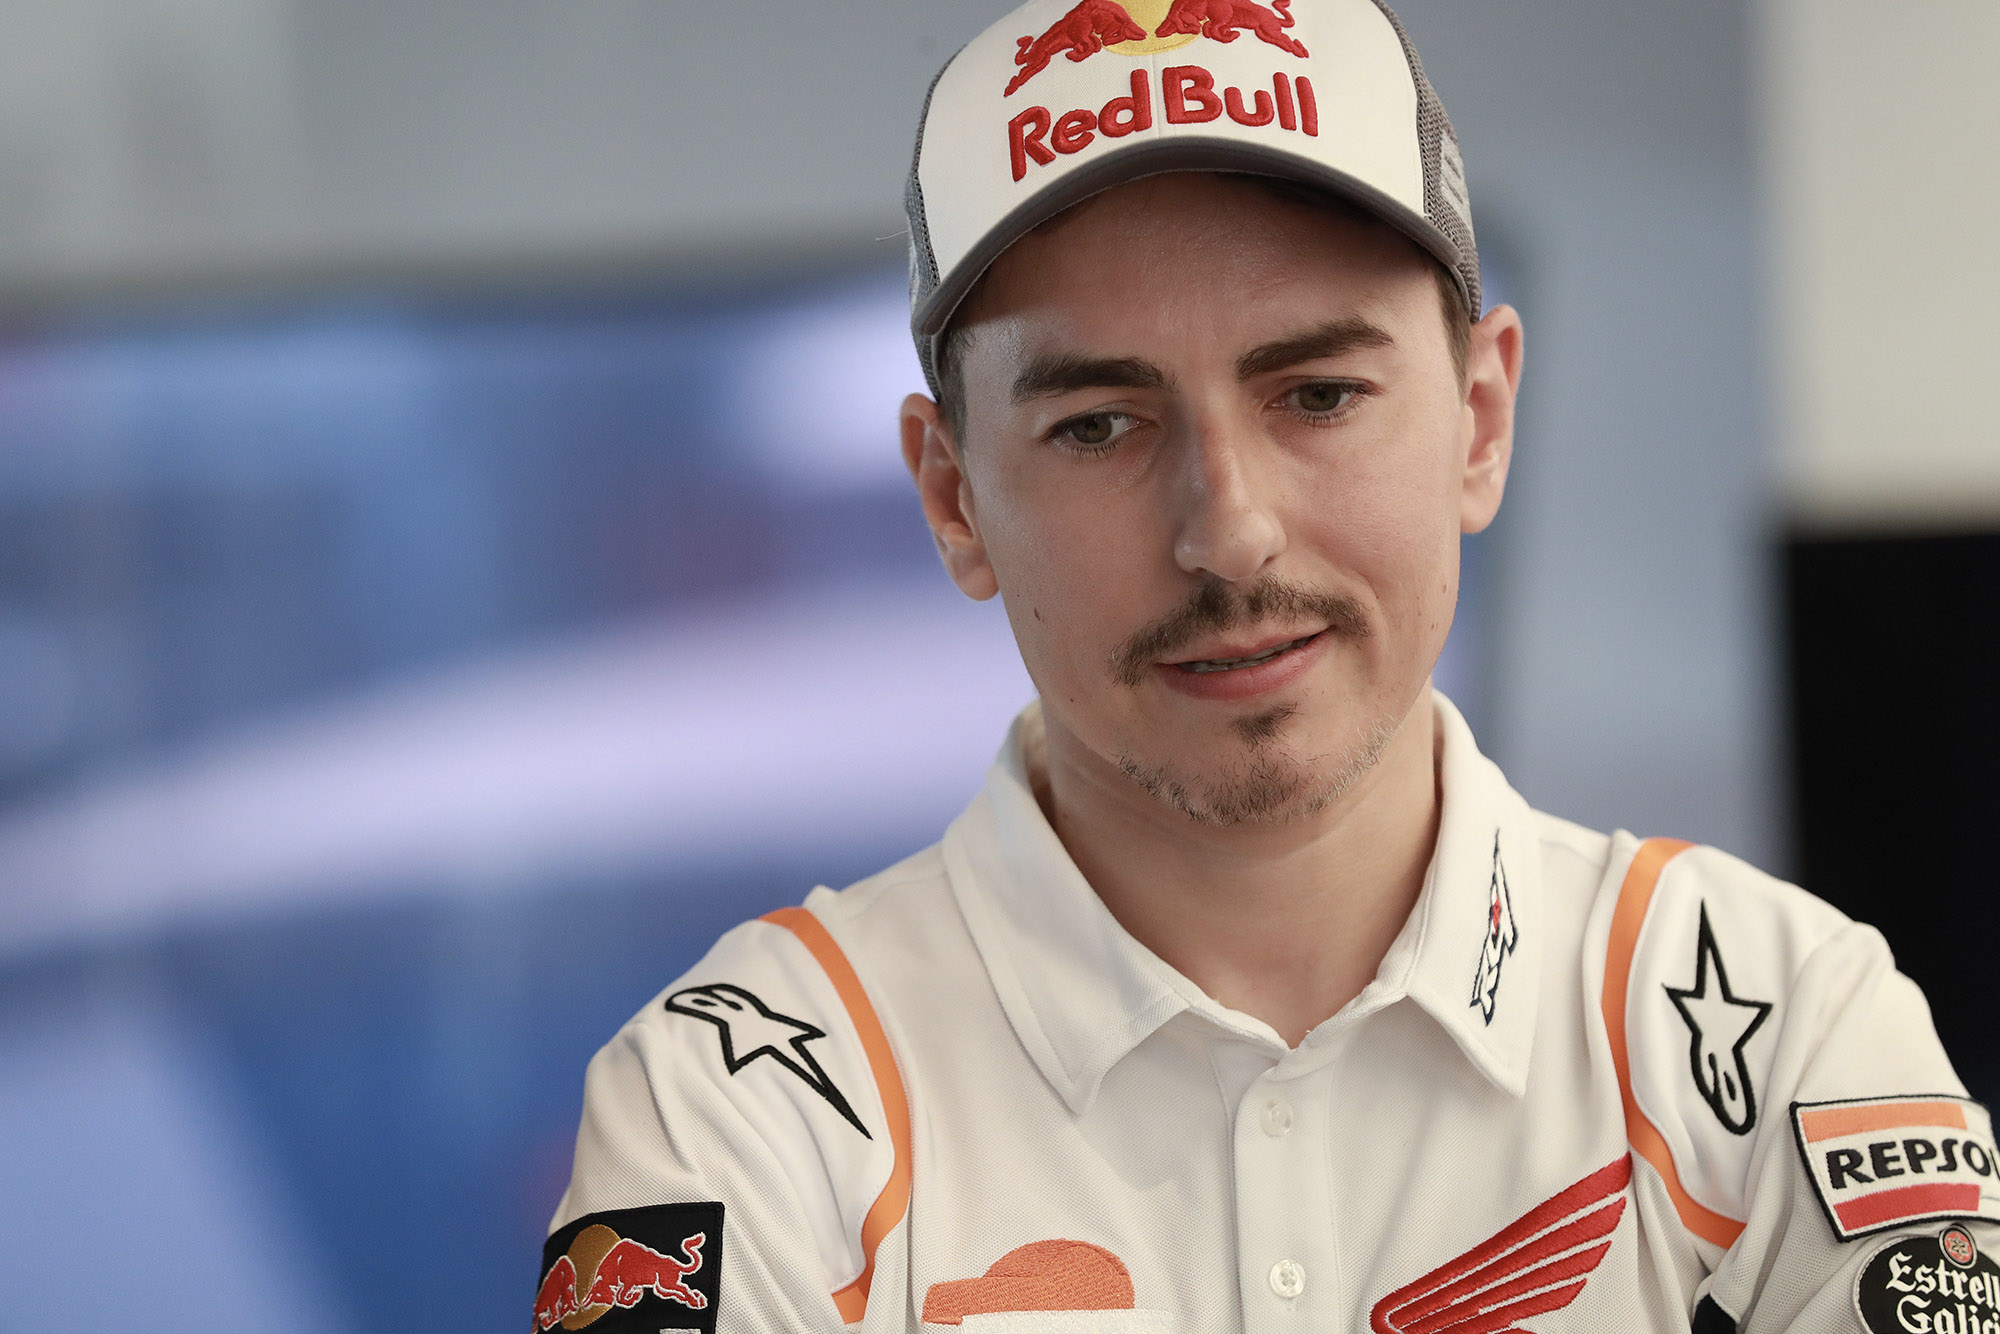 Jorge Lorenzo: 'I don't want to race any more'. 3-time MotoGP champion announces retirement